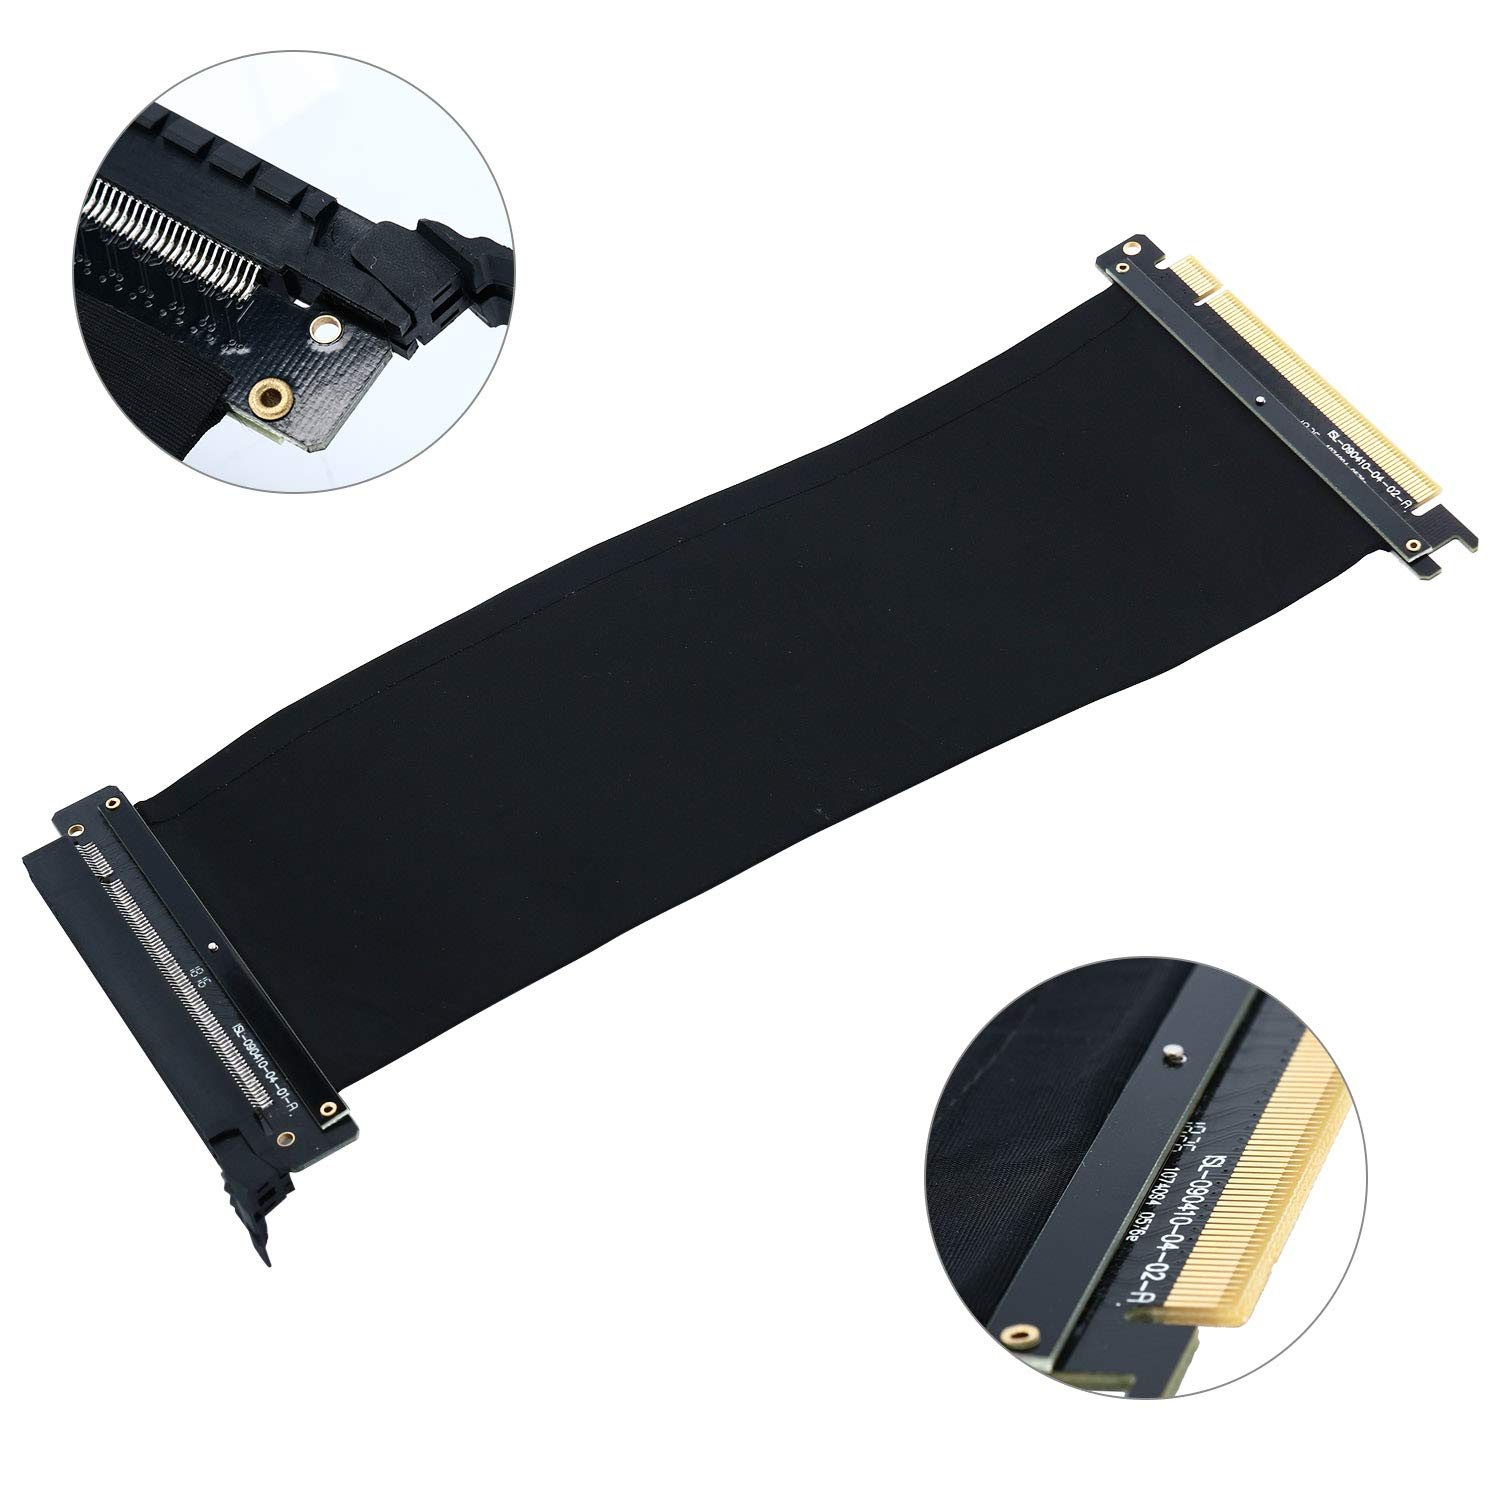 PCI Express PCIe3.0 16x Flexible Cable Card Extension Port Adapter High Speed Riser Card (25cm)